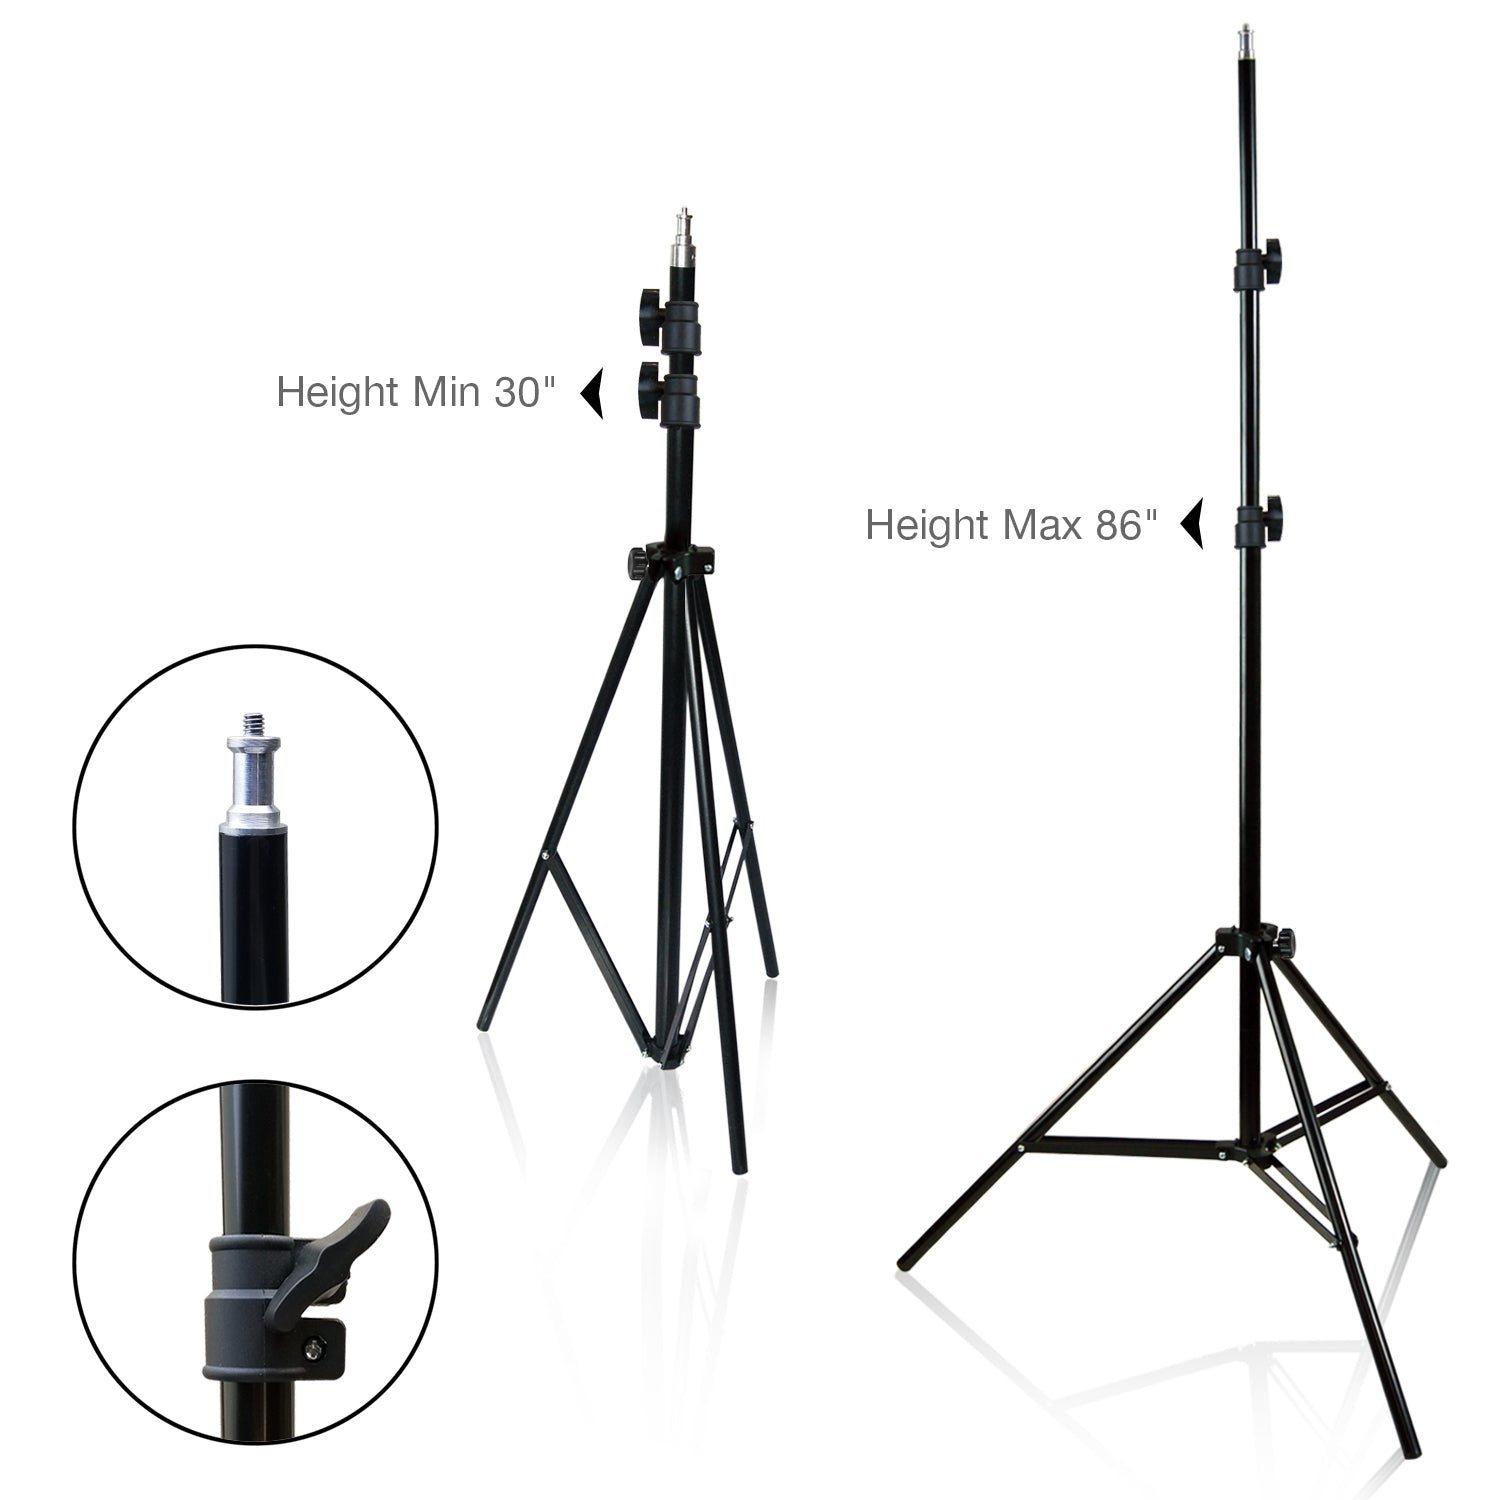 Loadstone Studio 2-Pack Reflector Dish Metal Lamp with Continuous Lighting Bulb, Lamp Socket and Umbrella Reflector Holding Slot, Table Top Mini Light Stand Tripod, Photo Studio, WMLS4684